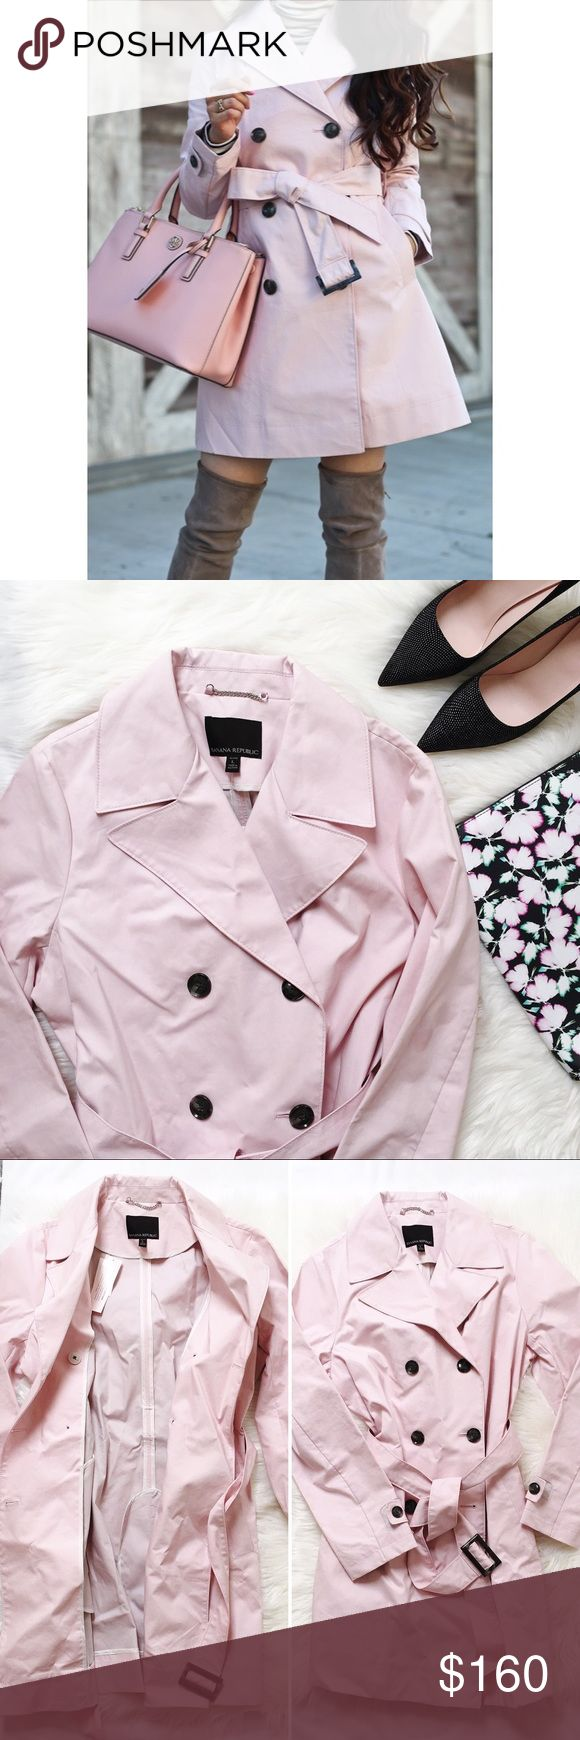 Banana Republic dusty pink belted trench jacket A classic belted jacket from Banana Republic in a lovely pale pink. I've been a little obsessed with #necessaryneutrals lately and this piece is no exception! Pair this jacket with boots or heels. Definitely a great staple that transitions from fall to spring! 🌷  Size: Large Petite 100% Cotton. Dry clean.  Photo credit 📷: Jane Song {fitfabfunmom.com} Banana Republic Jackets & Coats Trench Coats